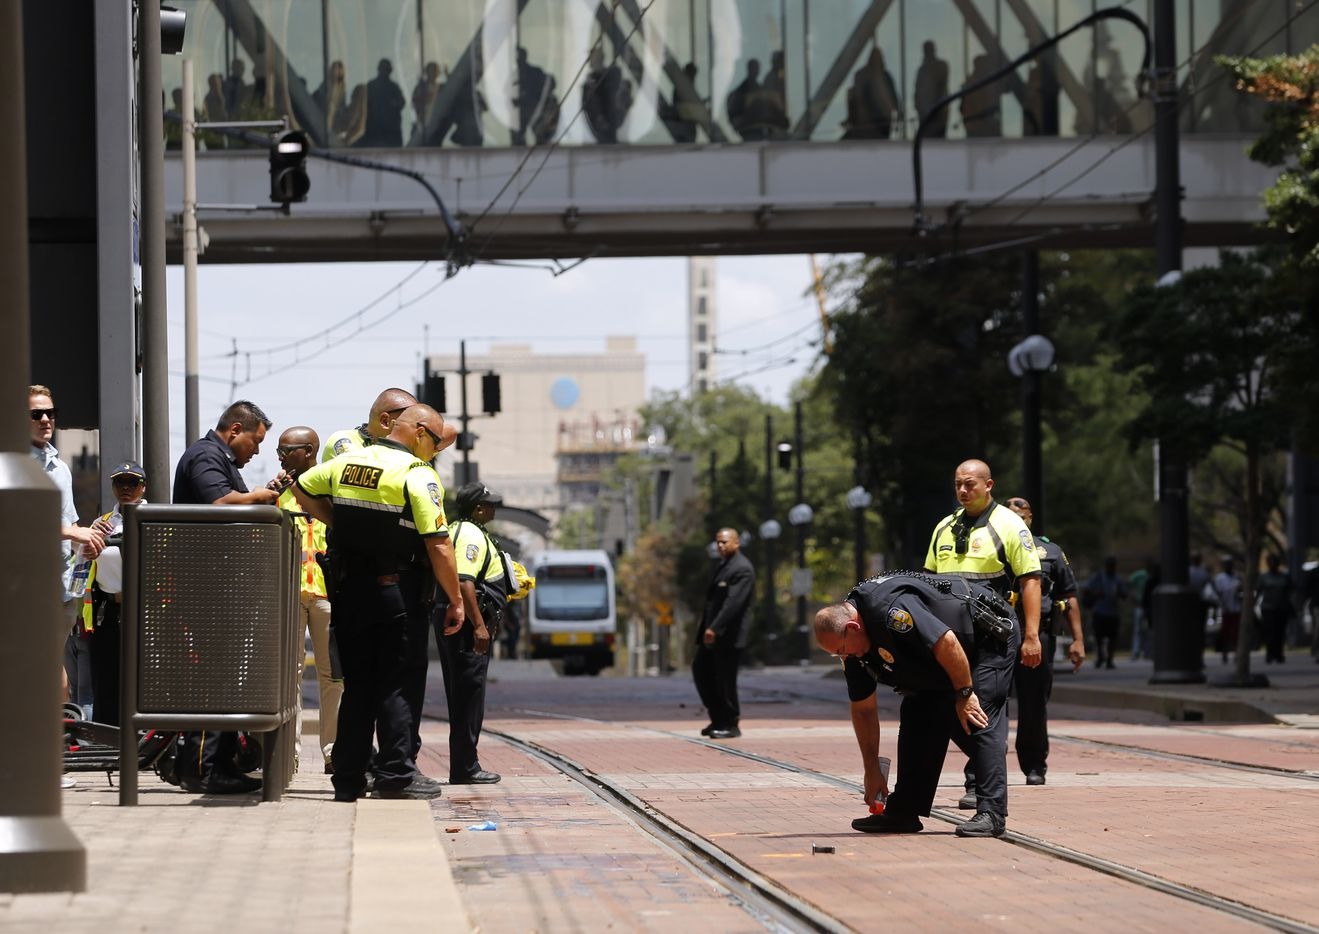 DART police investigate the scene where a Dallas police officer was hit by a DART train near the intersection of Bryan Street  and Olive Street in downtown Dallas on Tuesday, Aug. 13, 2019.